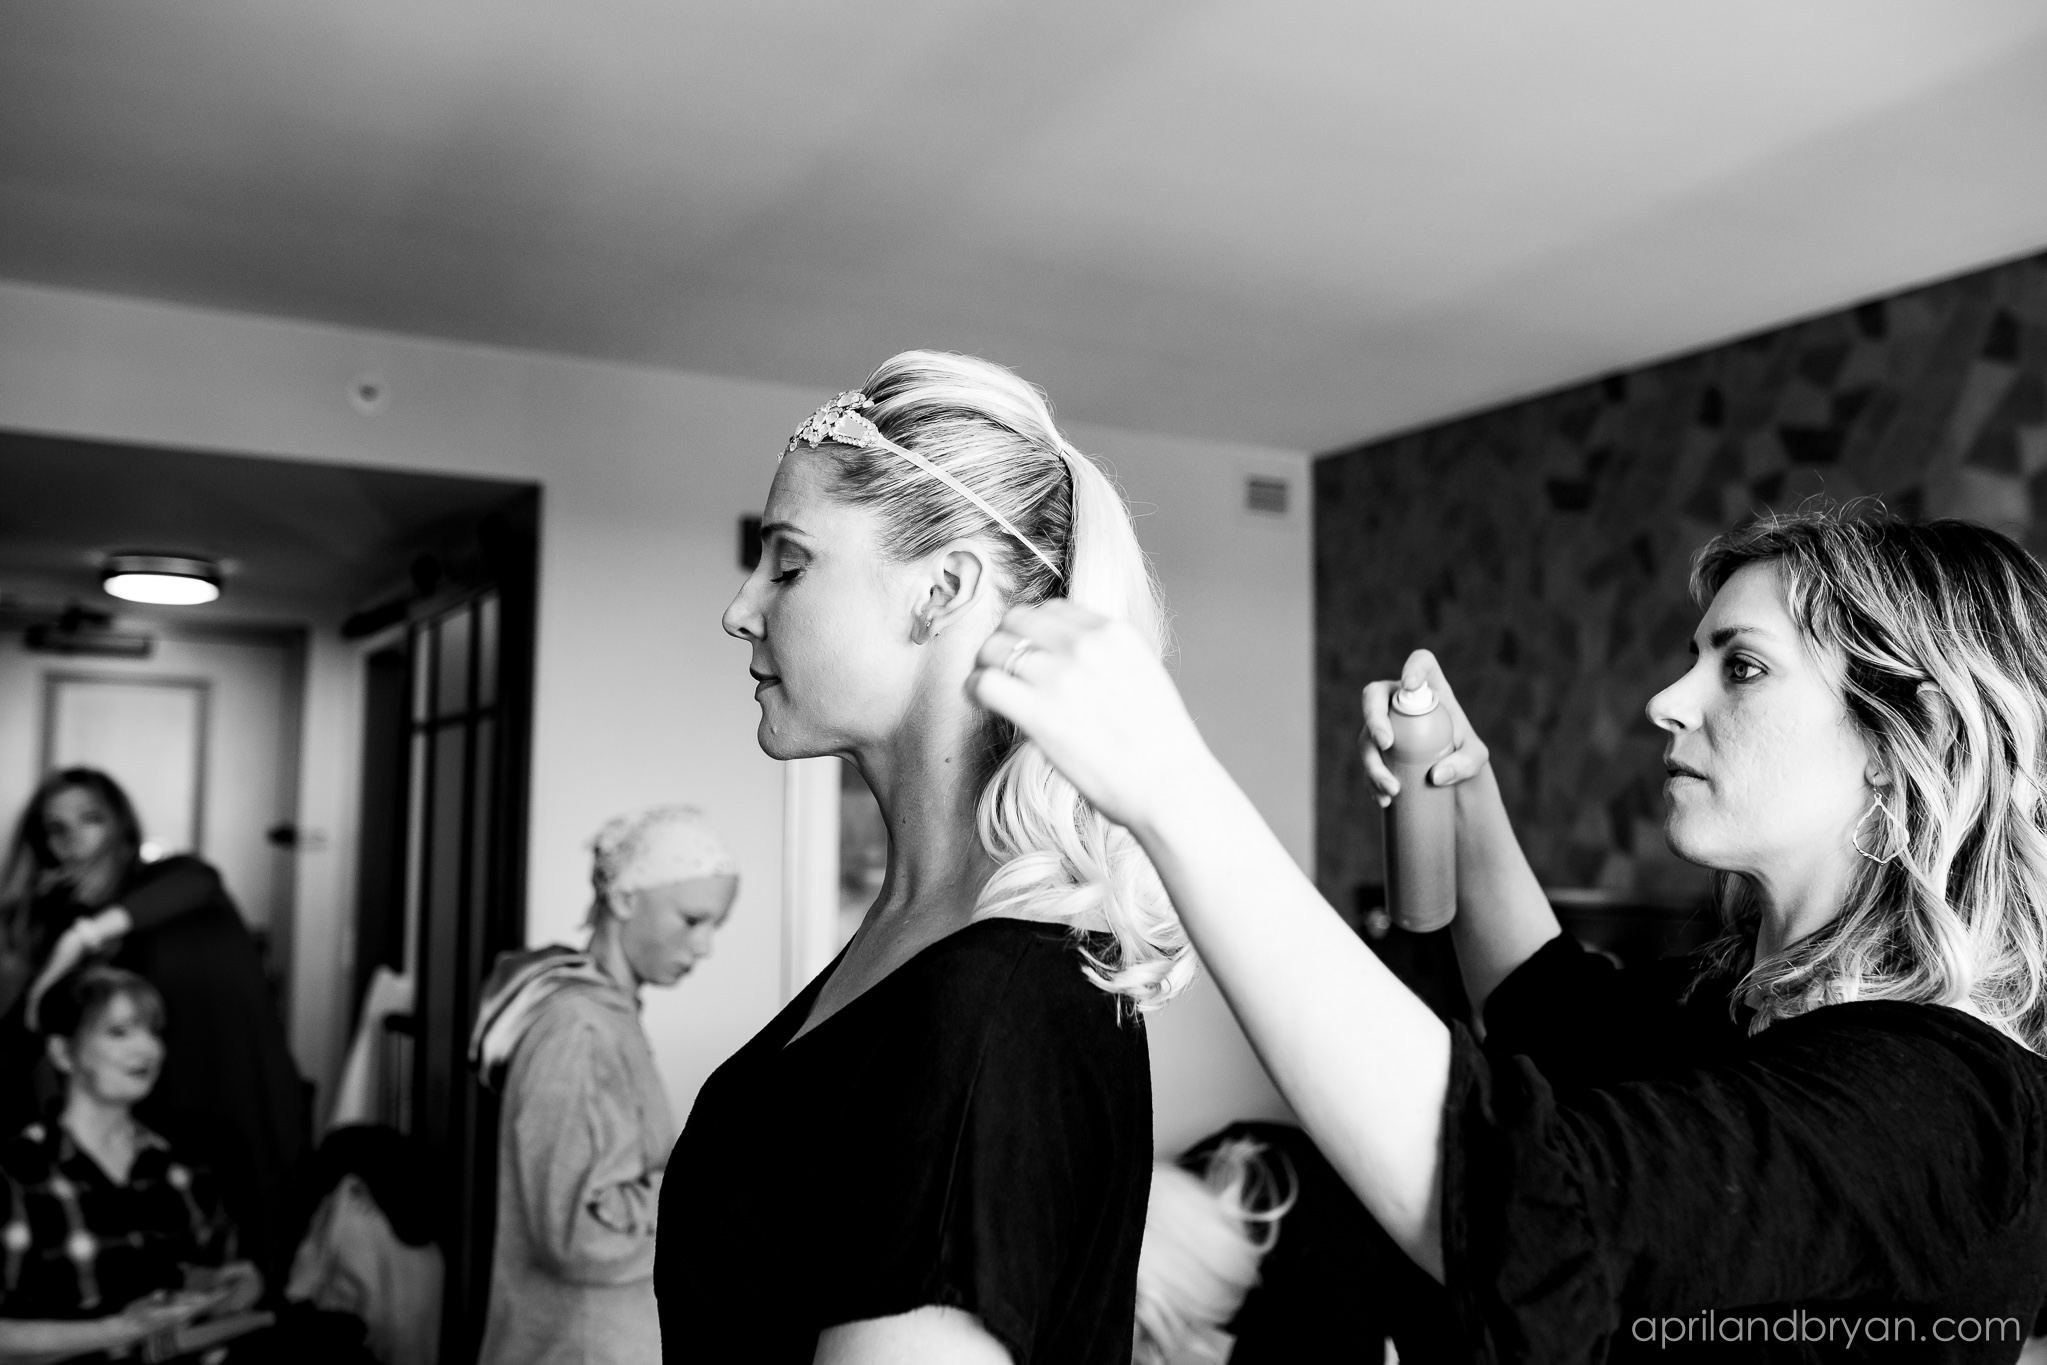 Hair and makeupp before the ceremony is a must. The bride has mounted her head piece. now just to put on the dress! Nicholas and Rebecca Fasnacht tie the not at Tellus360 on November 1, 2019. Captured by April & Bryan Photography and featured on Dream Weddings.